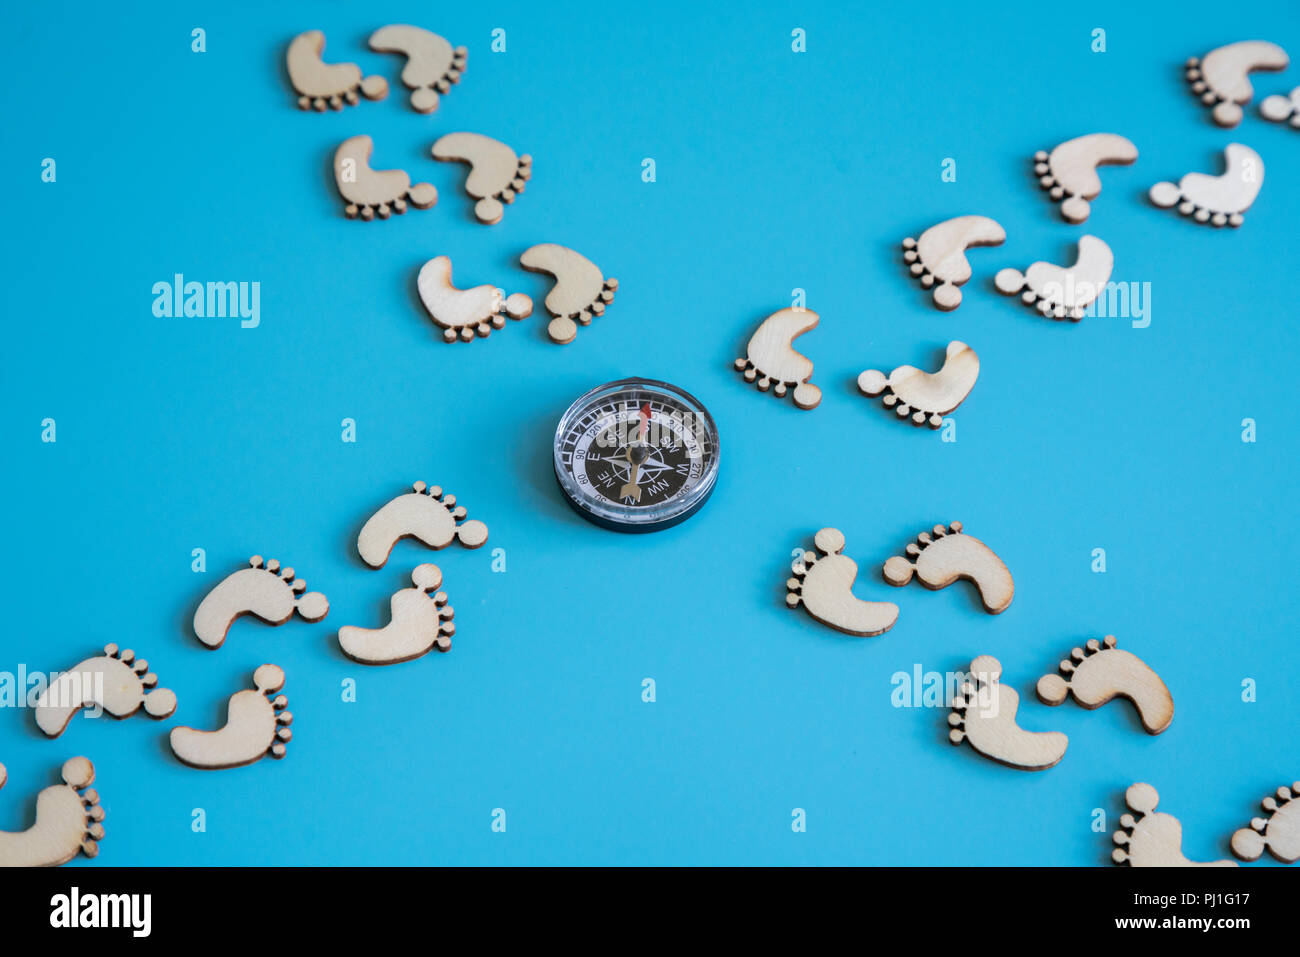 The concept of choosing the right way. Footprints on a blue background and a compass. Stock Photo